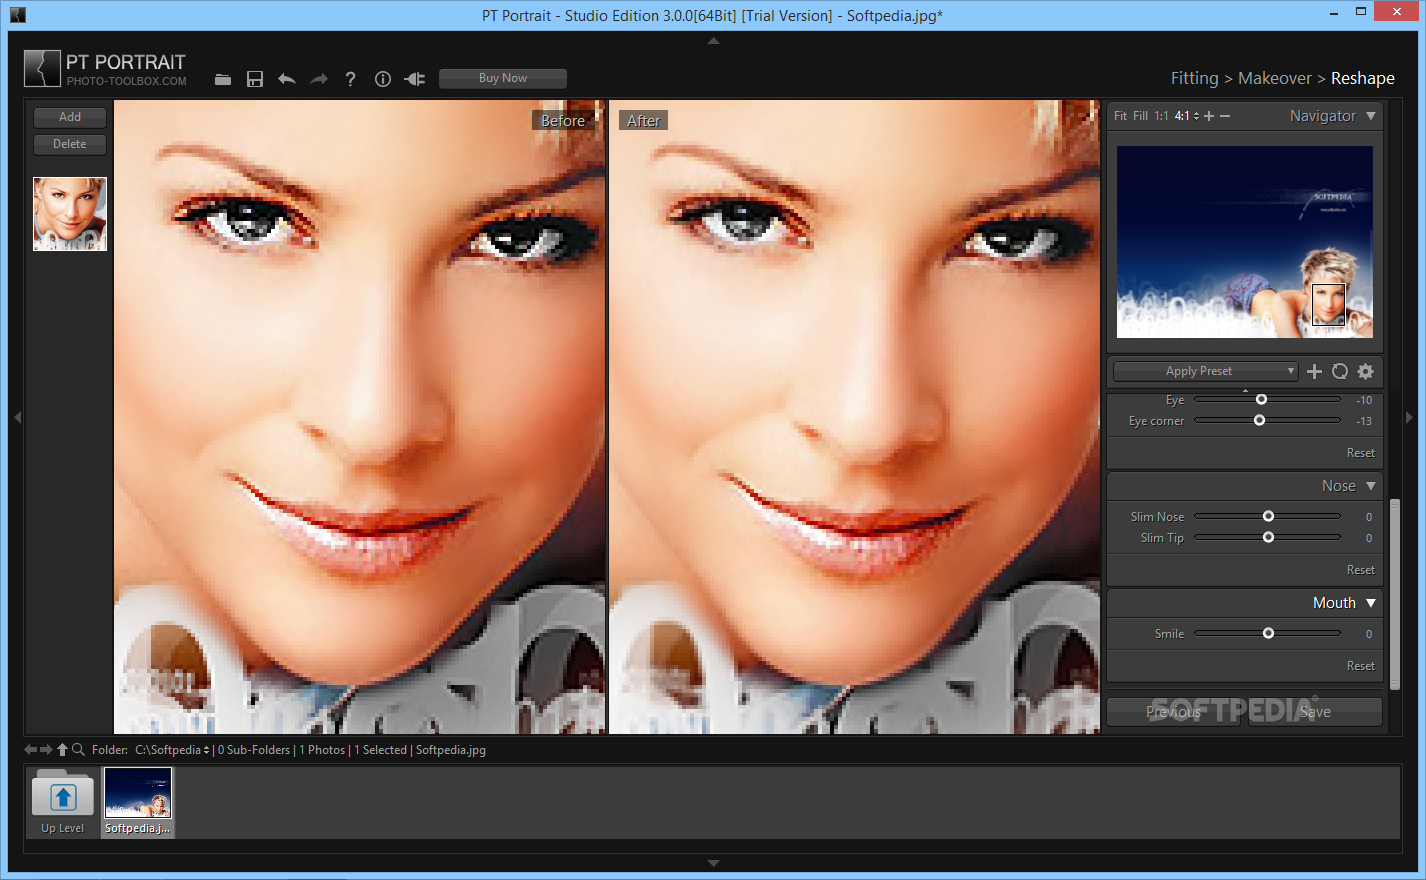 Download PT Portrait - Studio Edition 5.0